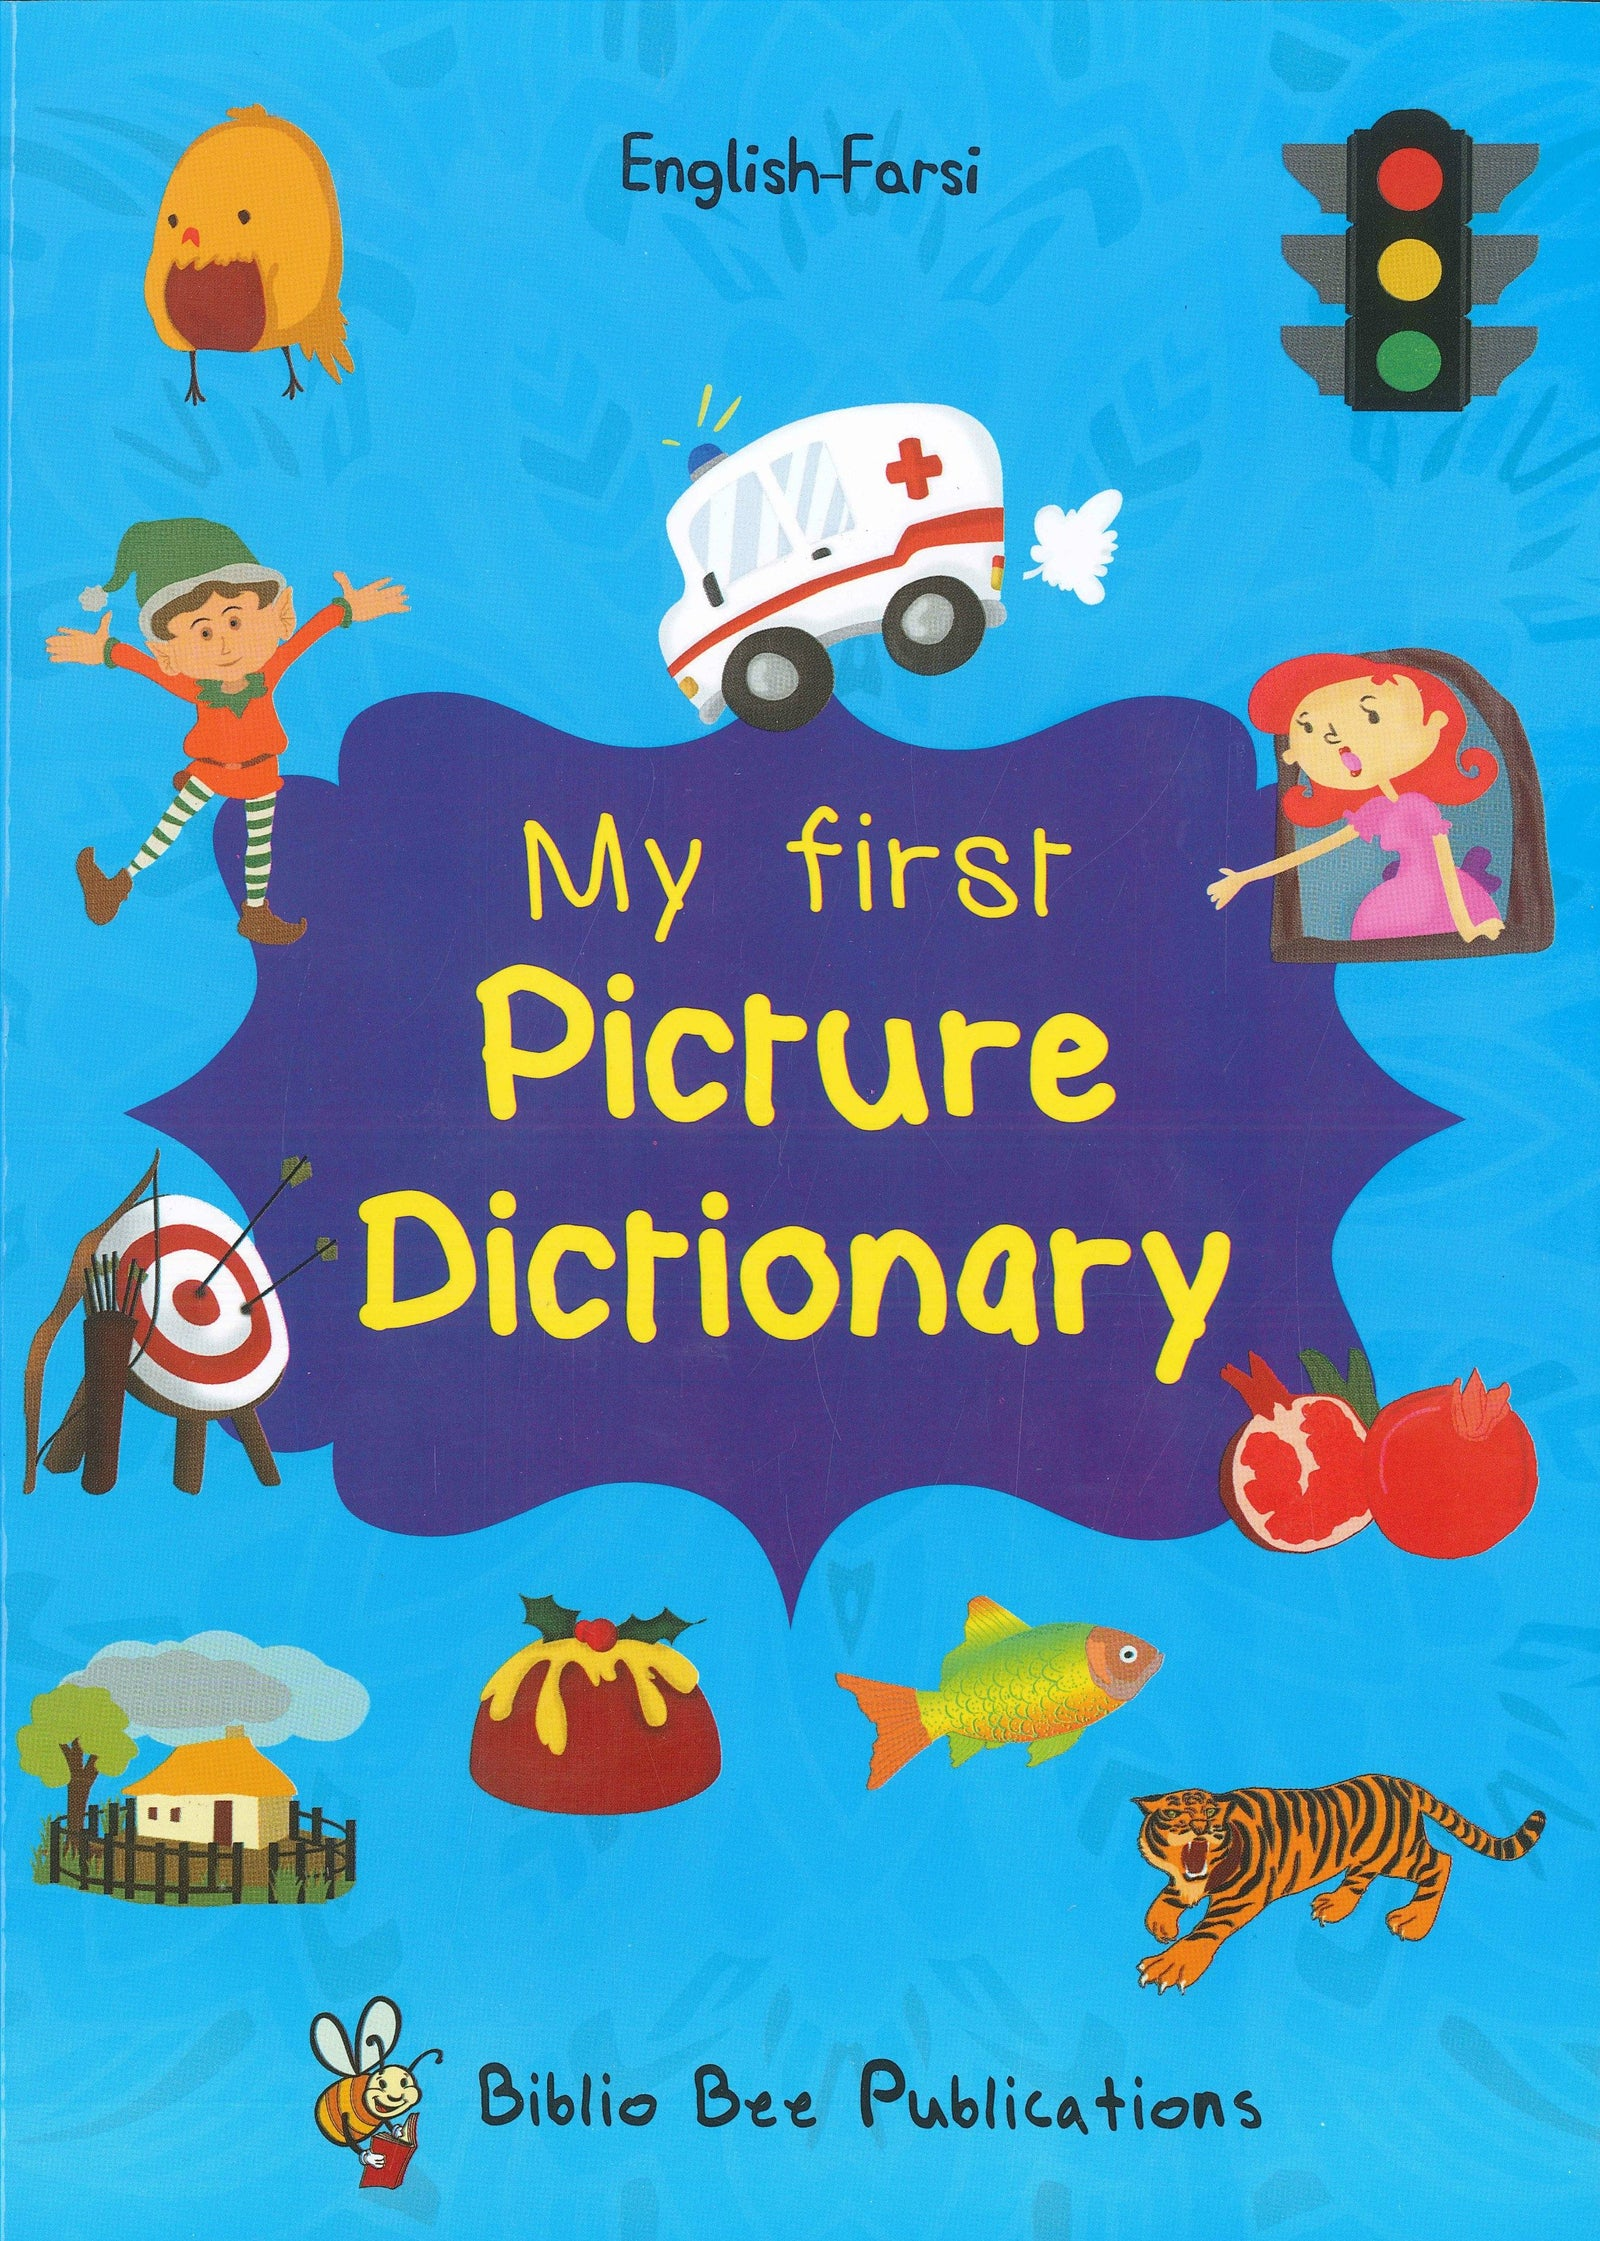 My First Picture Dictionary: English-Farsi 9781908357786 - front cover